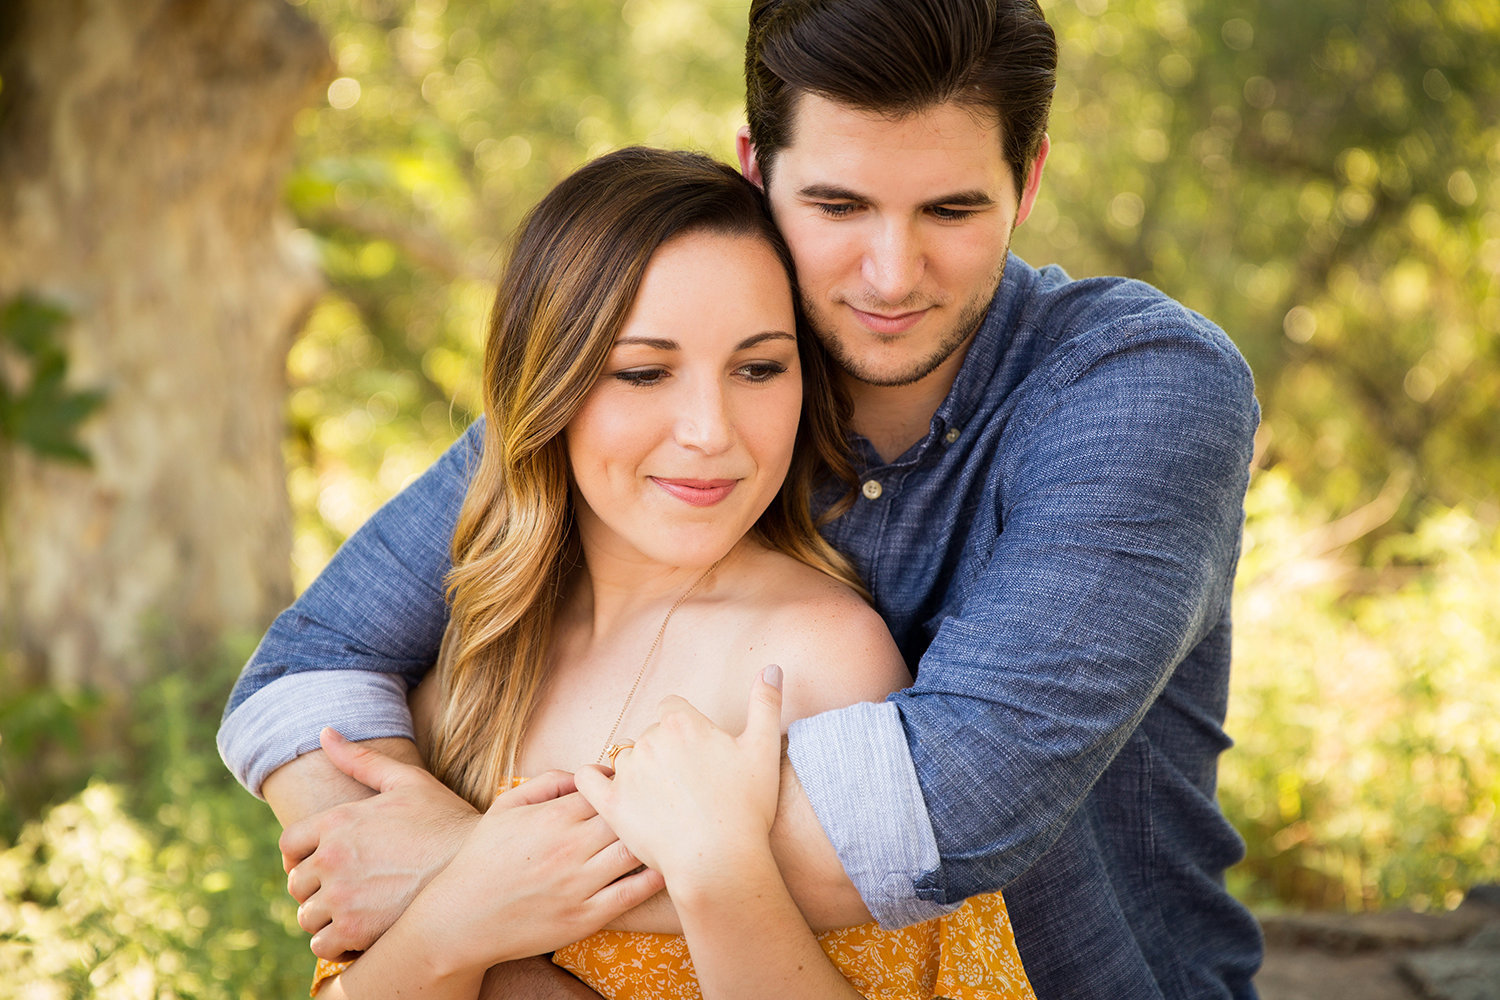 Daley Ranch engagement photos gorgeous outdoor photos